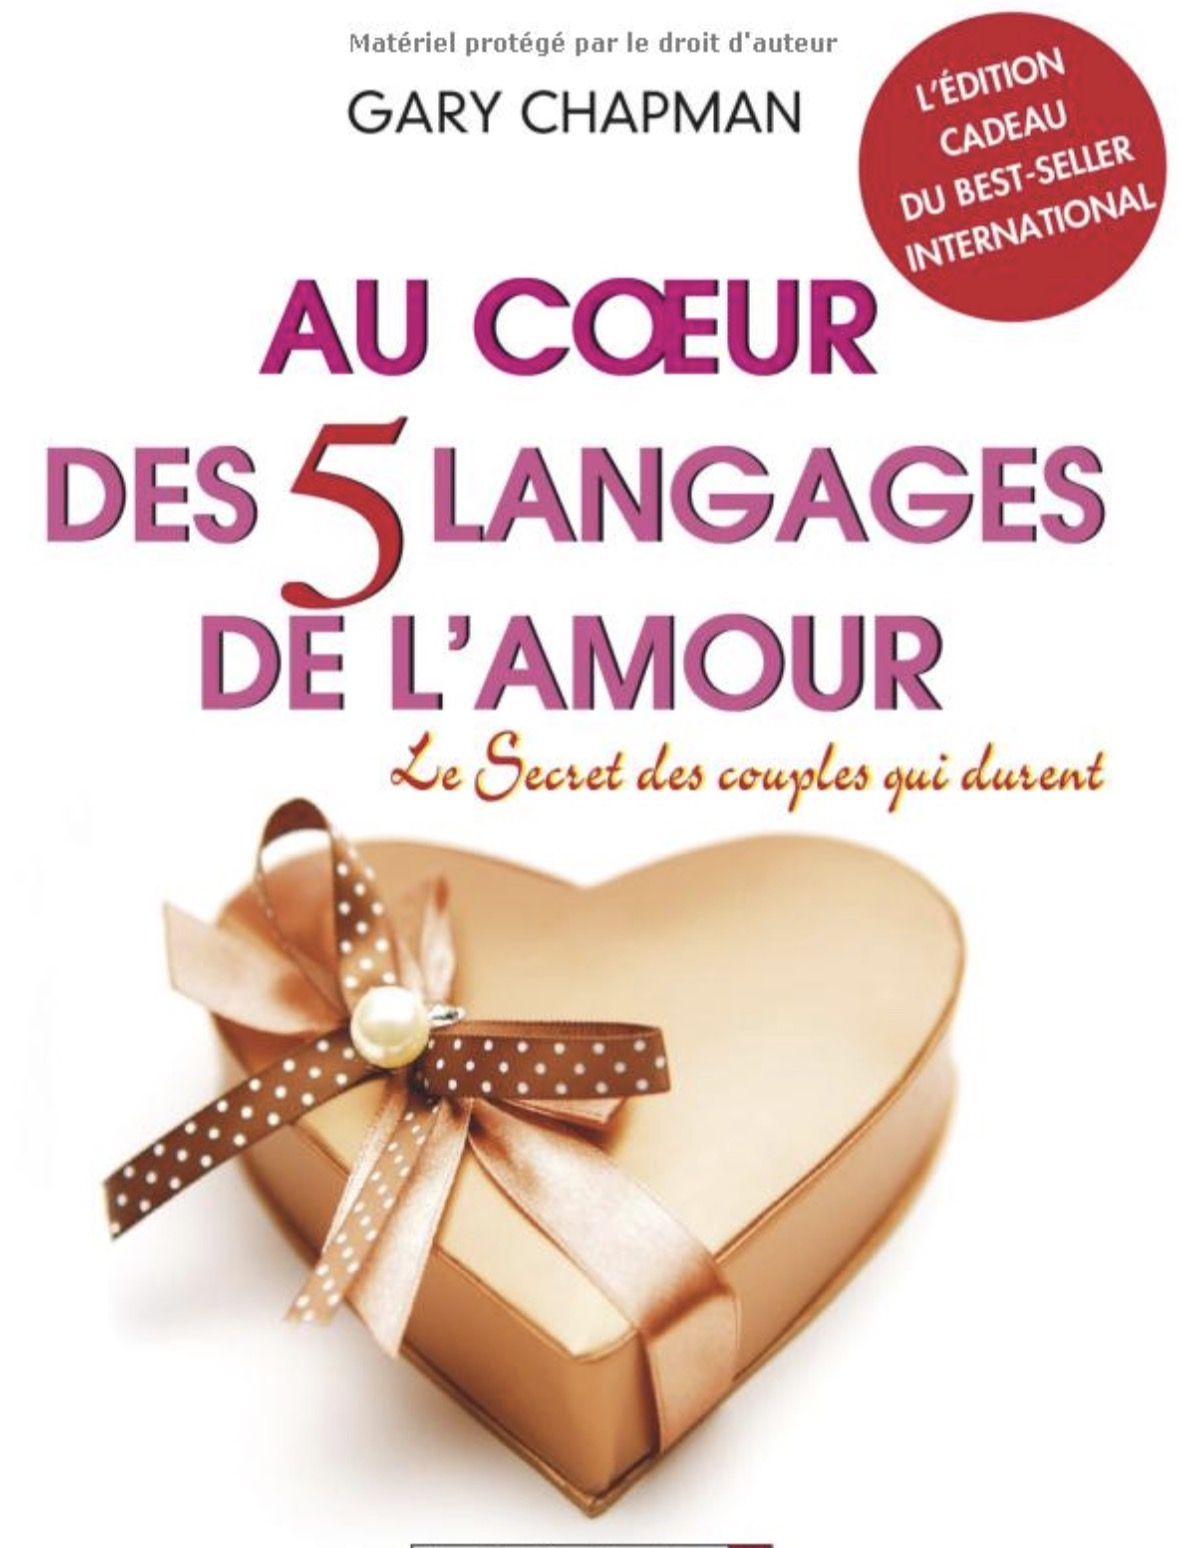 langage d'amour